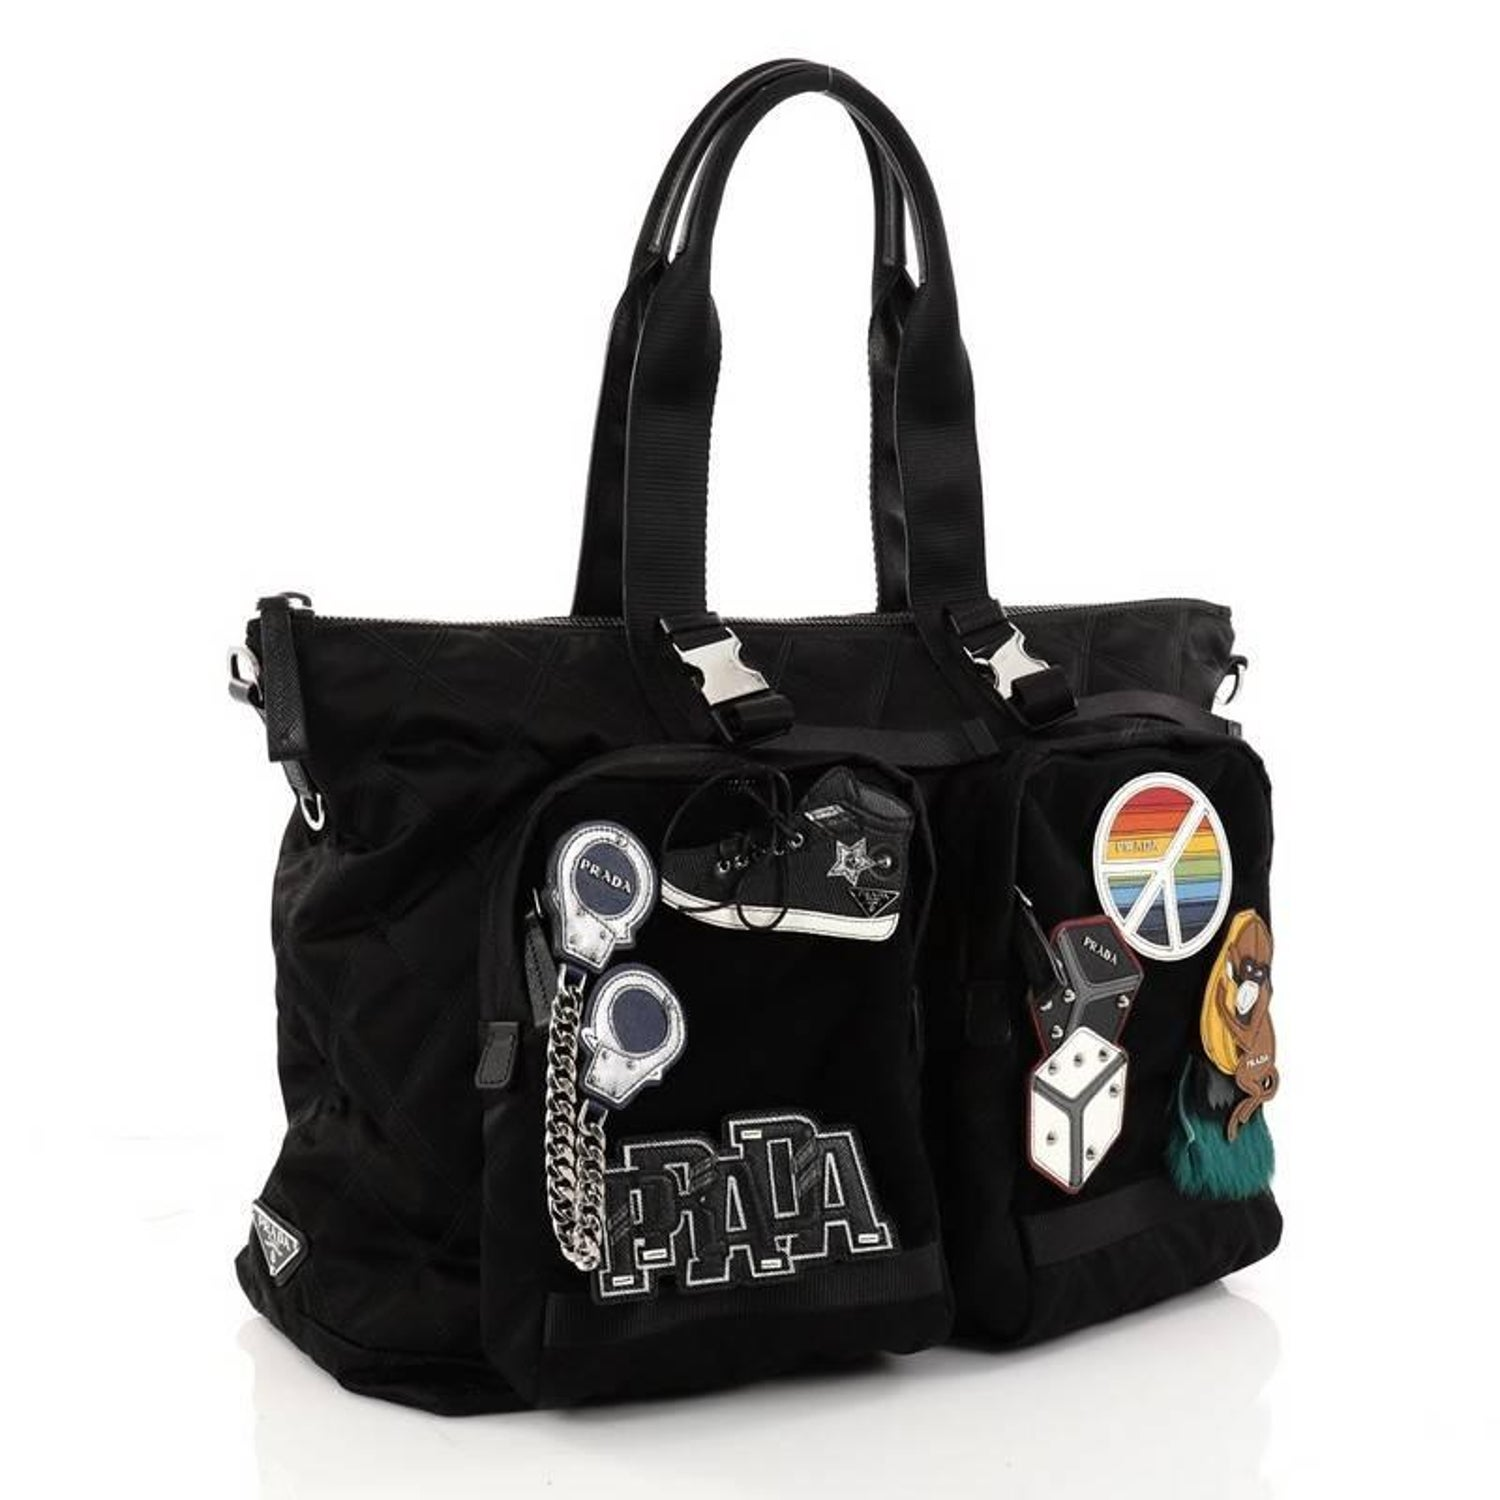 9fd79dda5c83 Prada Limited Edition Patches Tote Quilted Tessuto Large For Sale at 1stdibs